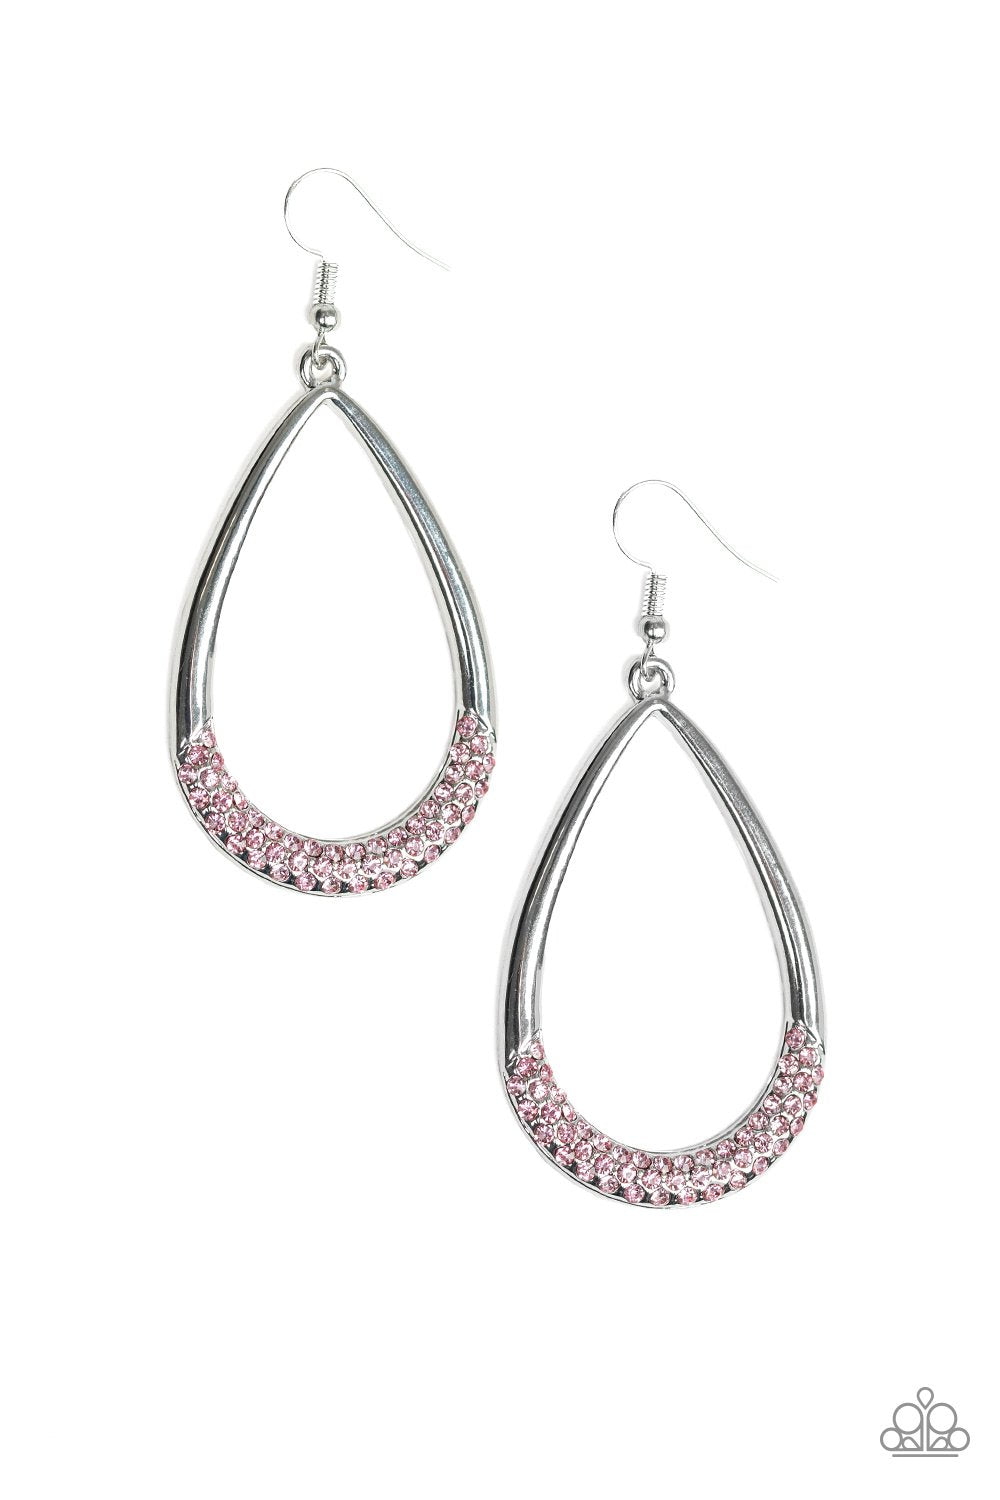 Take A Dip - Pink - Paparazzi Accessories - Pretty Girl Jewels